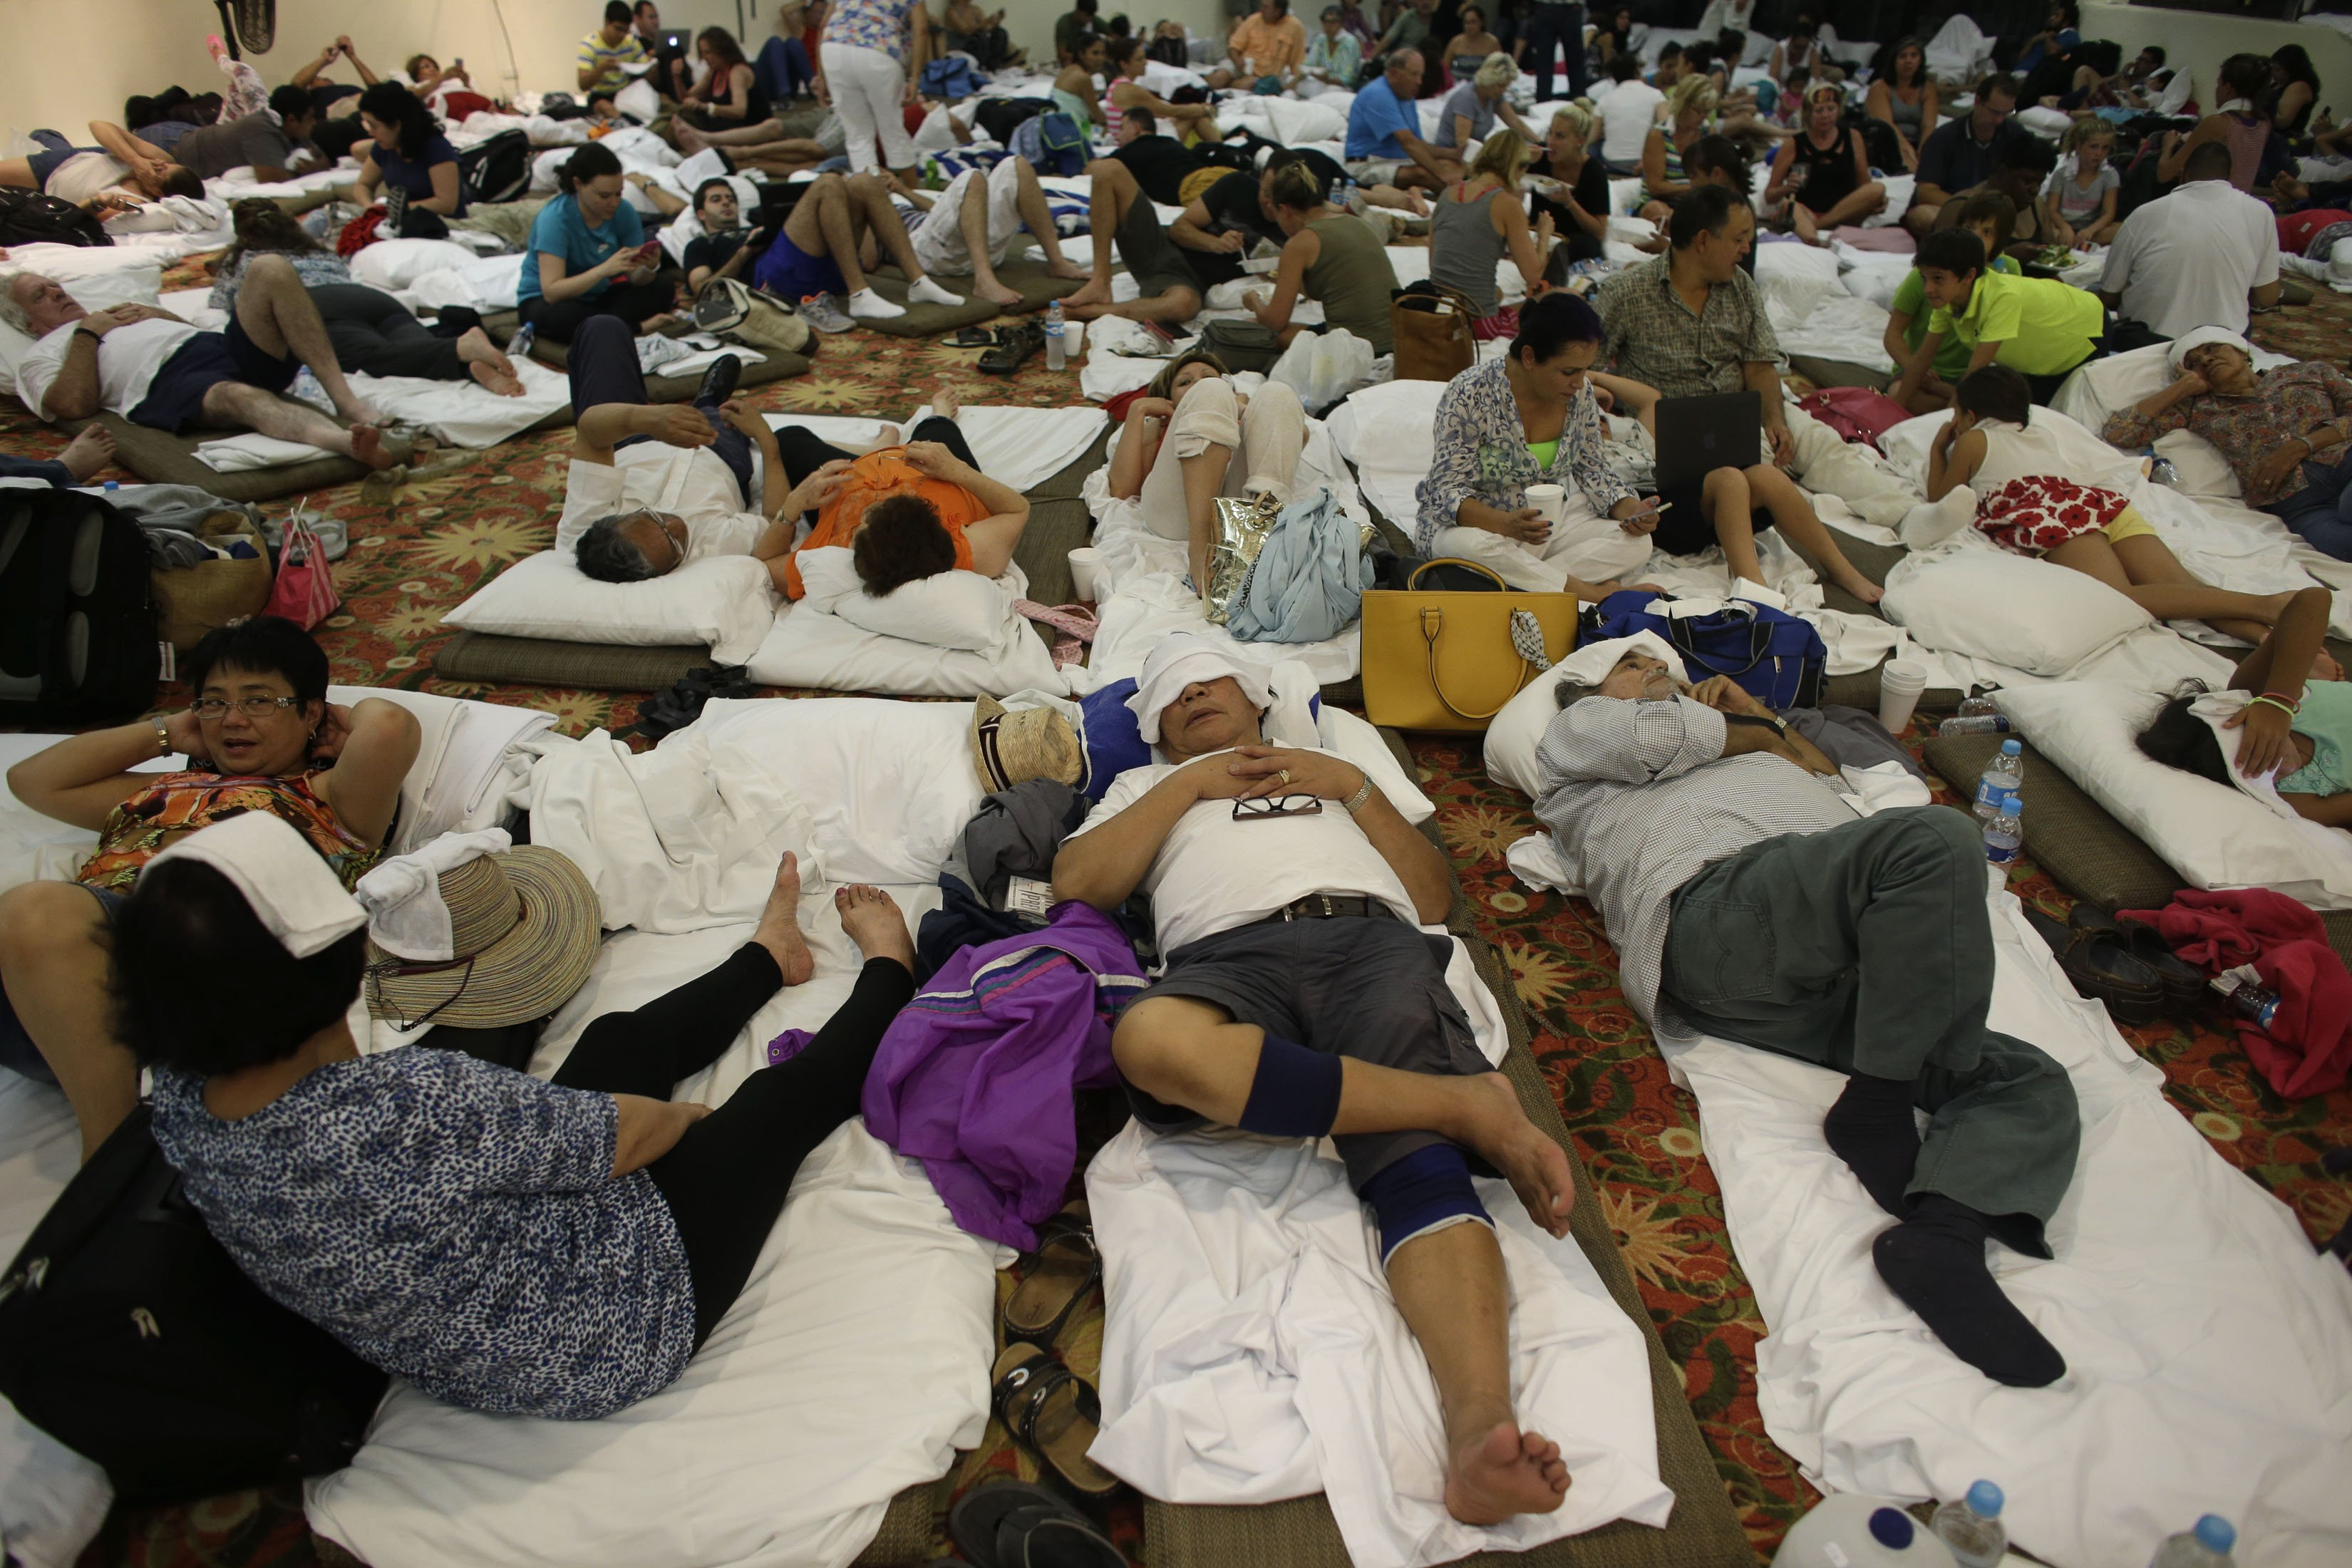 Tourists rest inside a shelter at a resort as Hurricane Odile approaches in Los Cabos, Mexico, Sept. 14, 2014.